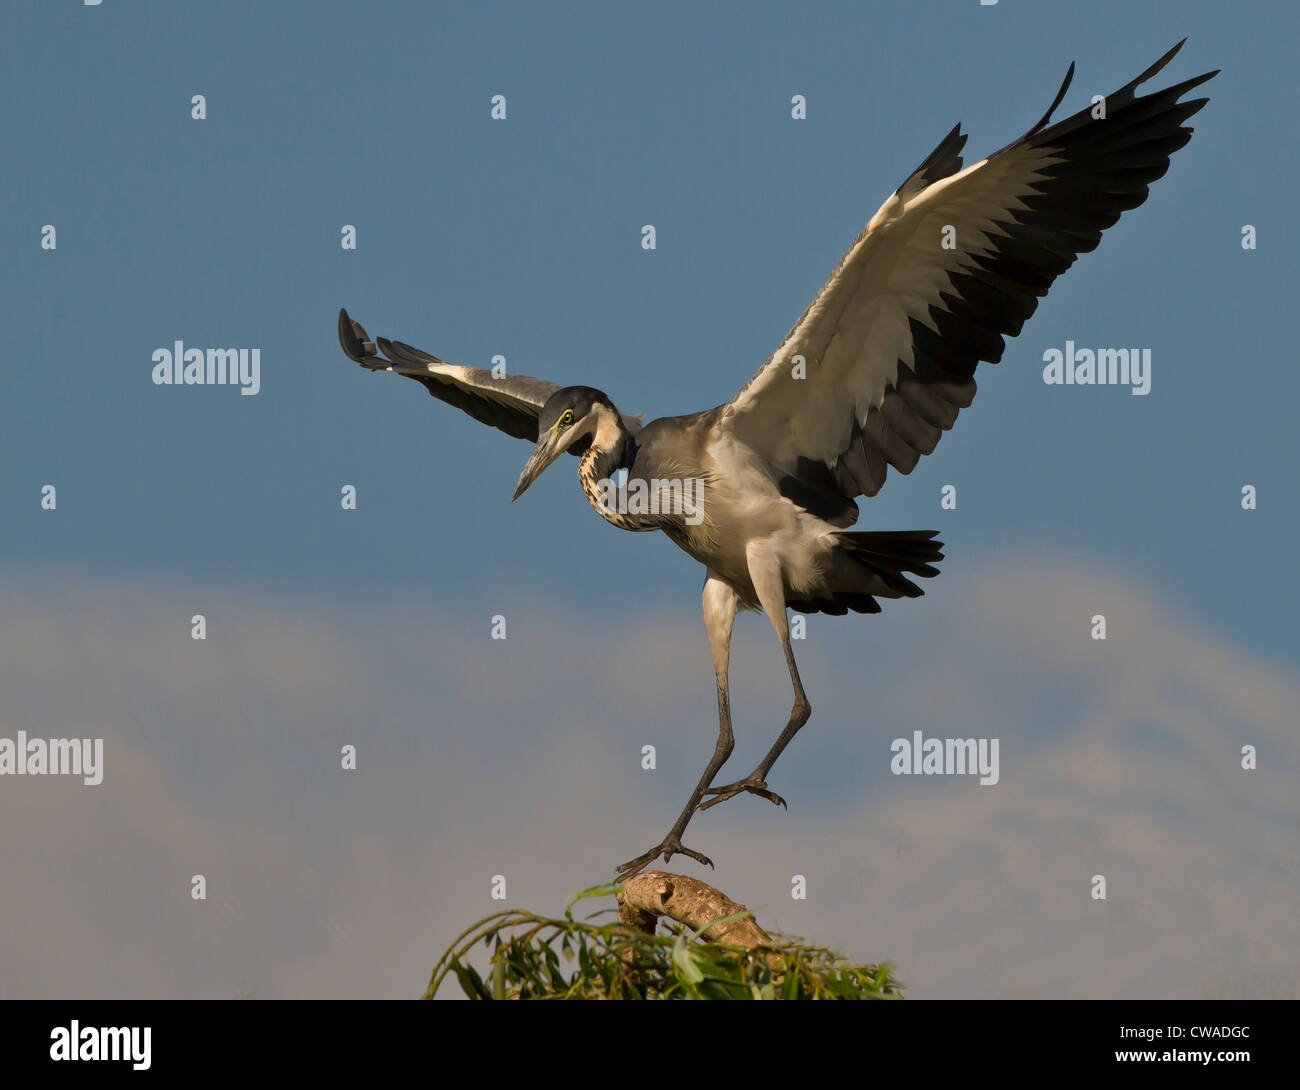 Black-headed Heron, Lonehill Dam, Johannesburg, South Africa - Stock Image